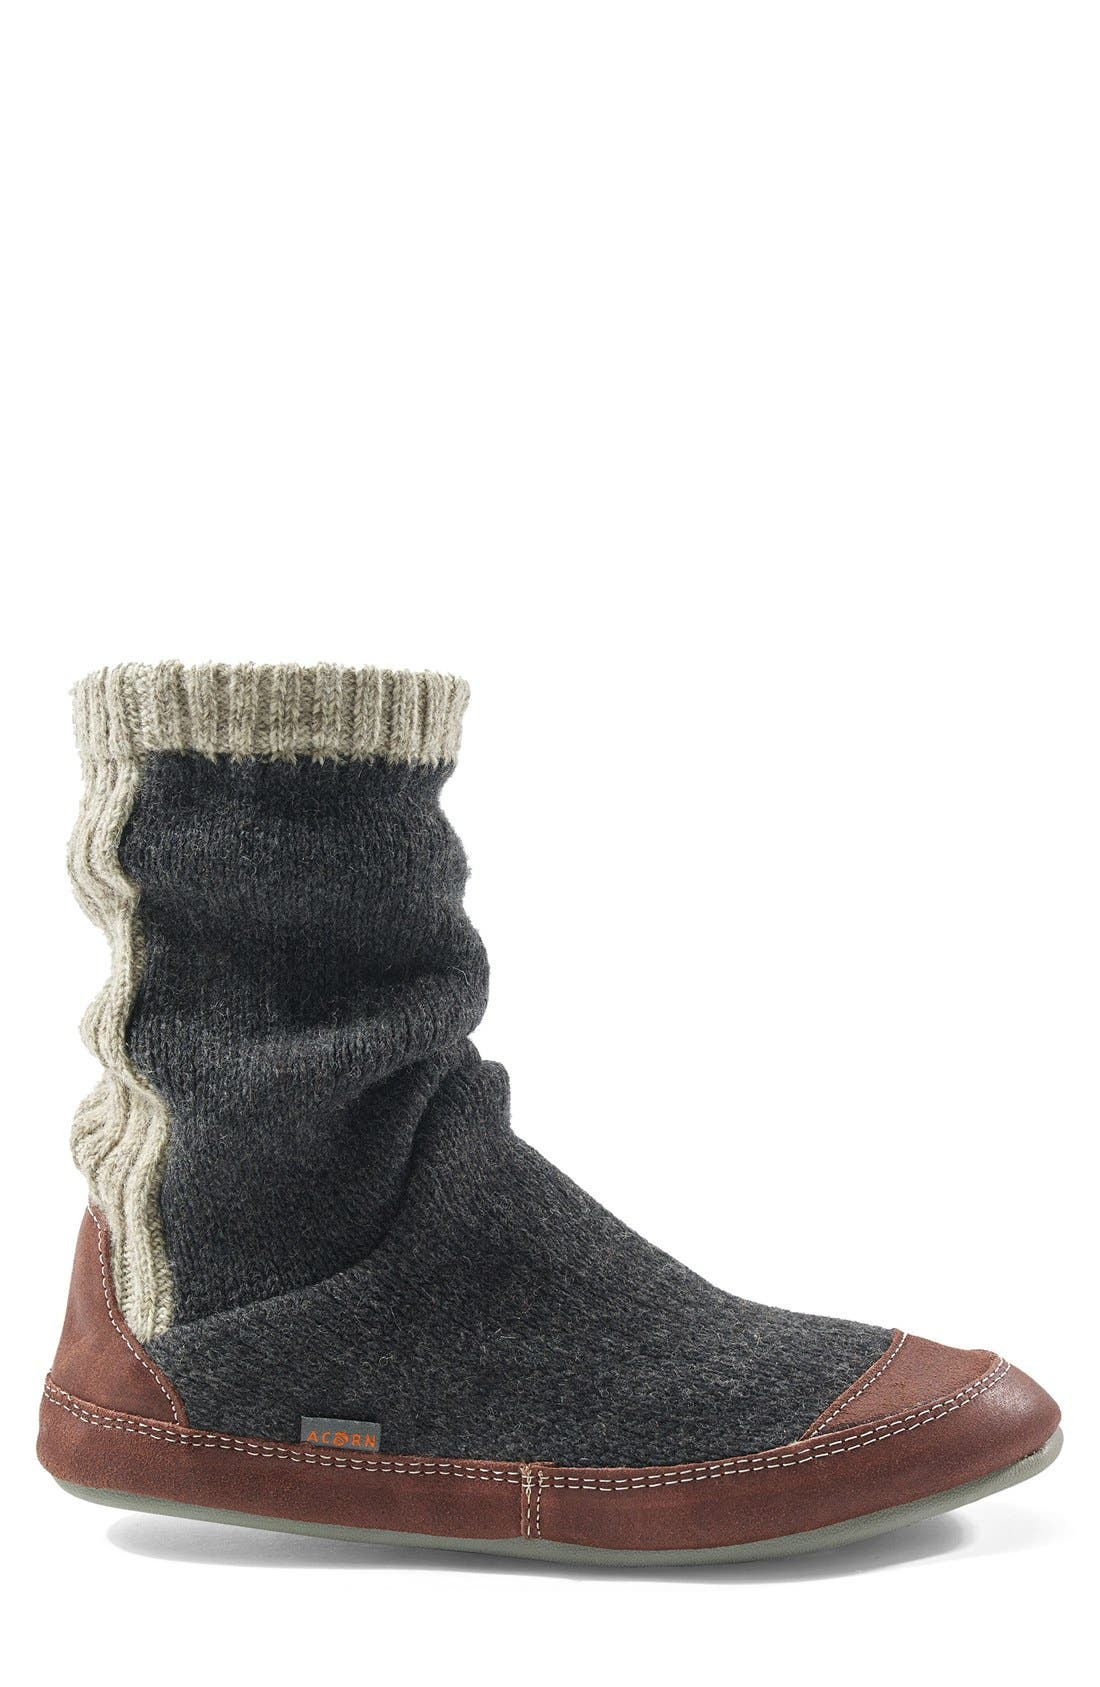 'Slouch Boot' Slipper,                             Alternate thumbnail 2, color,                             020